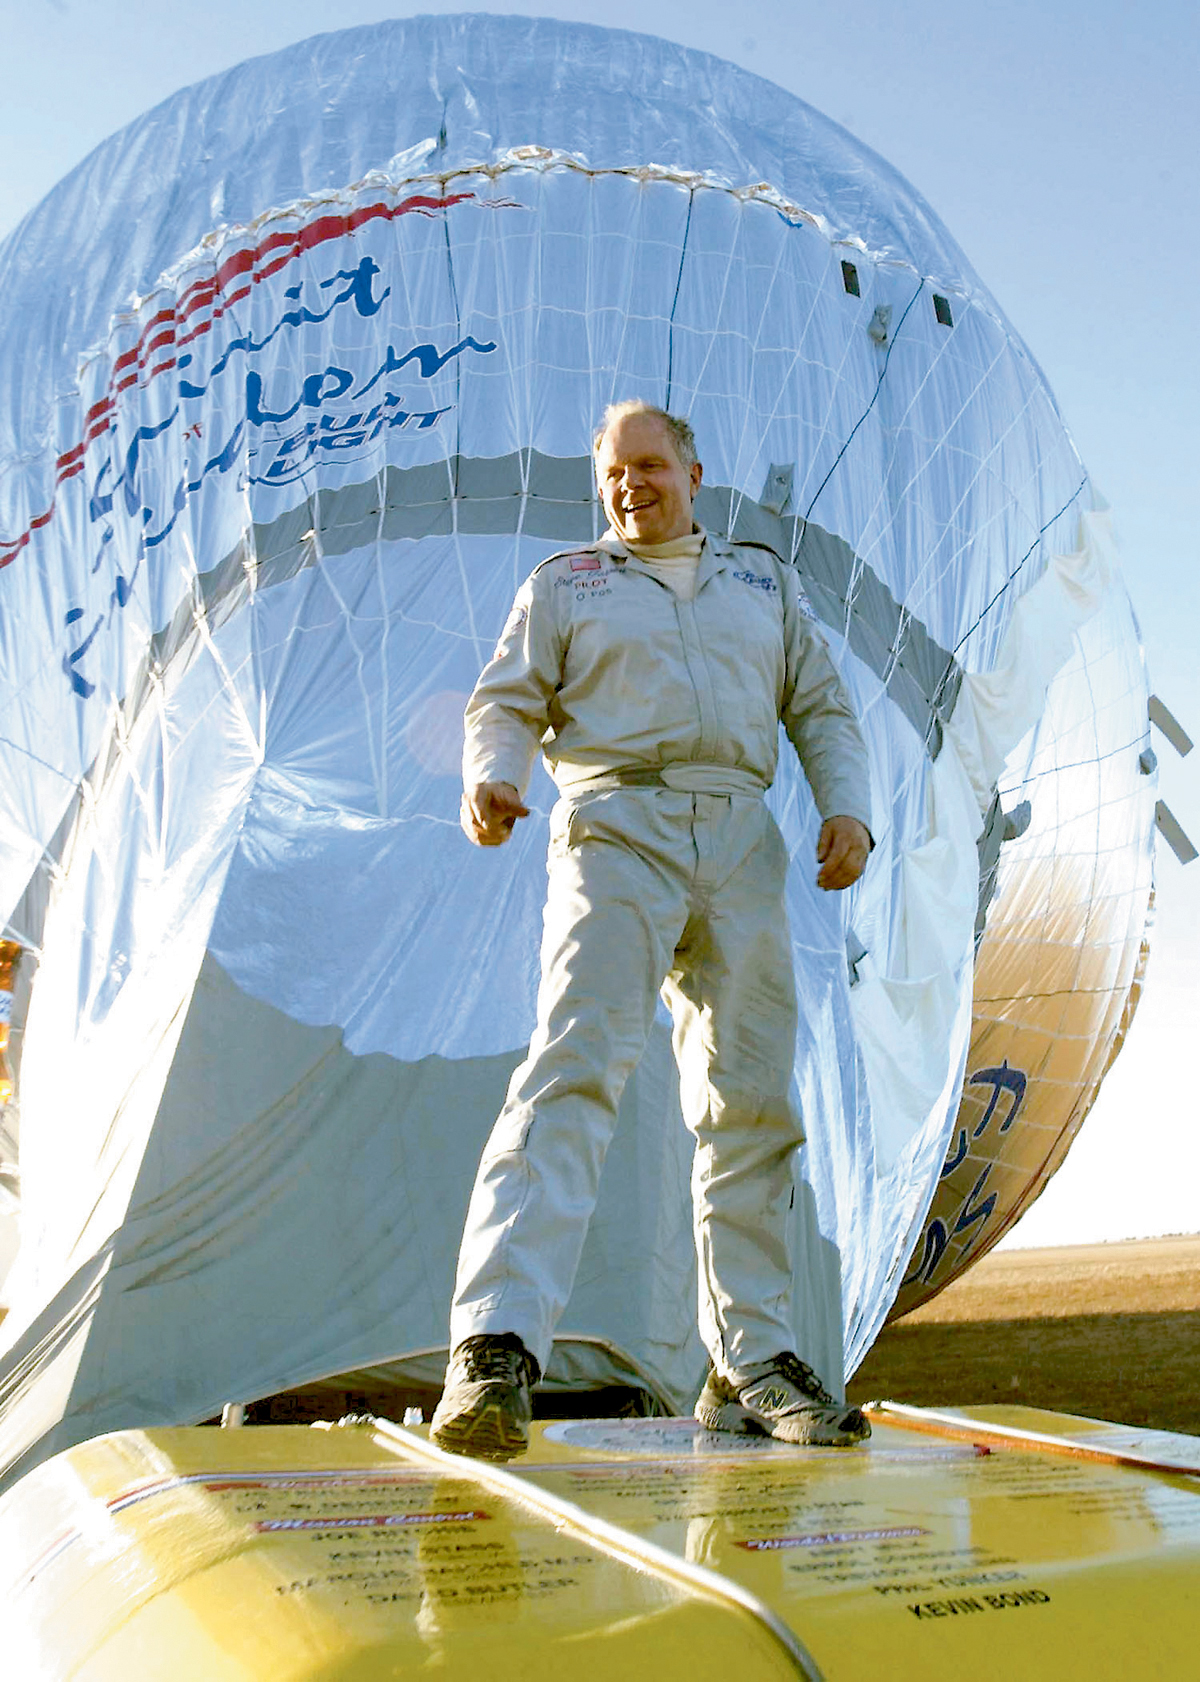 Steve Fossett: Always Scouting For New Adventures